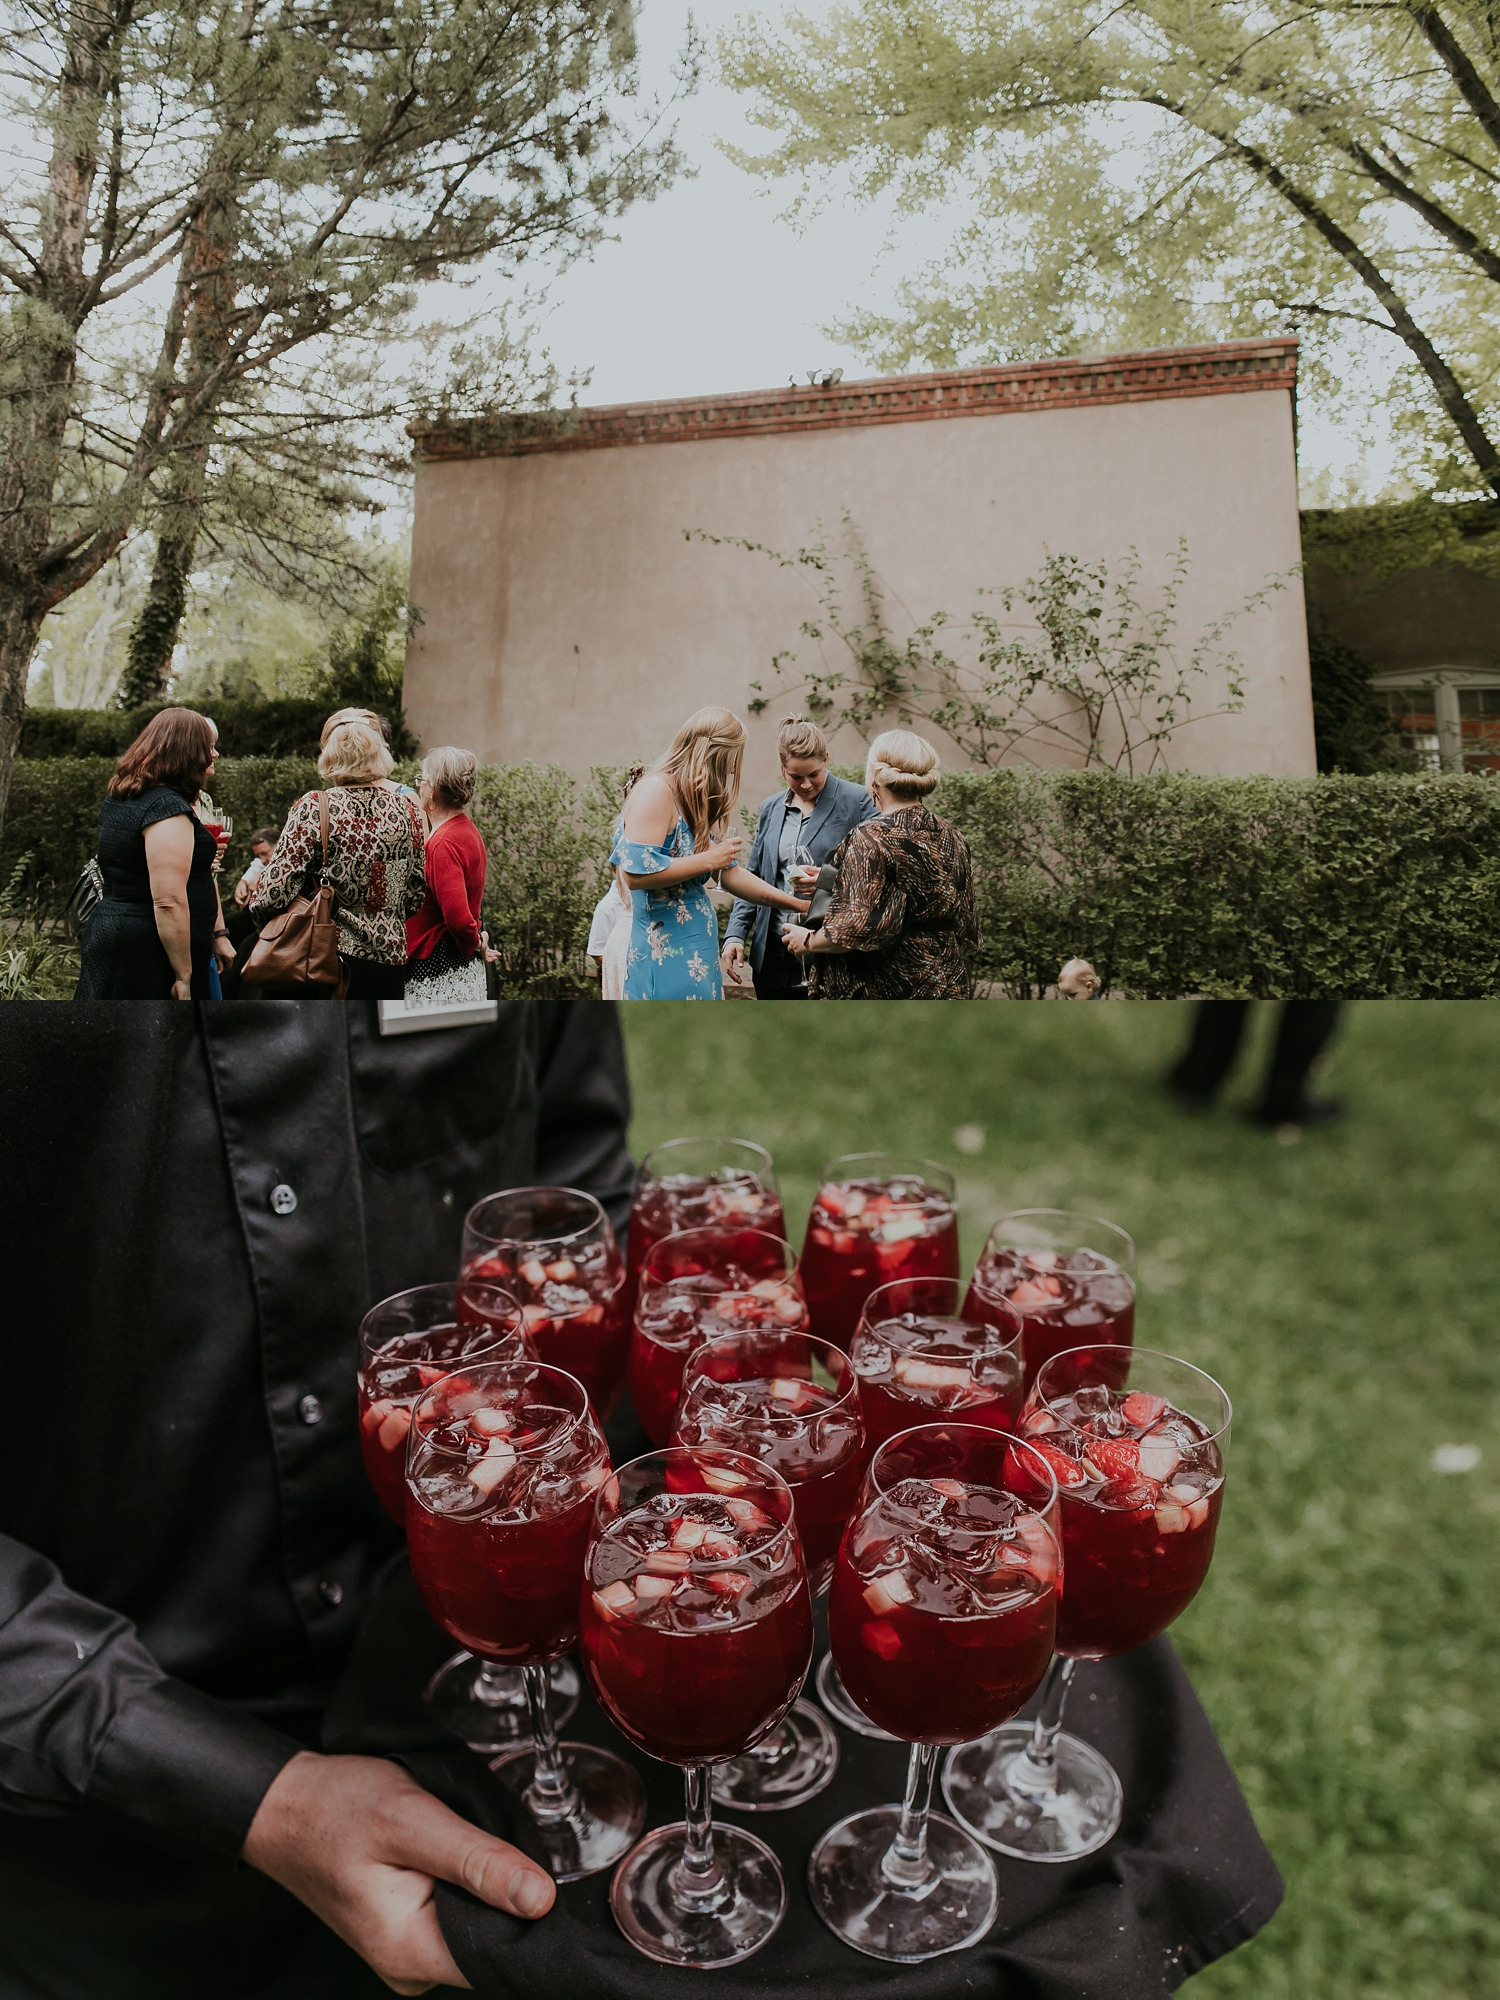 Alicia+lucia+photography+-+albuquerque+wedding+photographer+-+santa+fe+wedding+photography+-+new+mexico+wedding+photographer+-+los+poblanos+wedding+-+los+poblanos+fall+wedding_0061.jpg